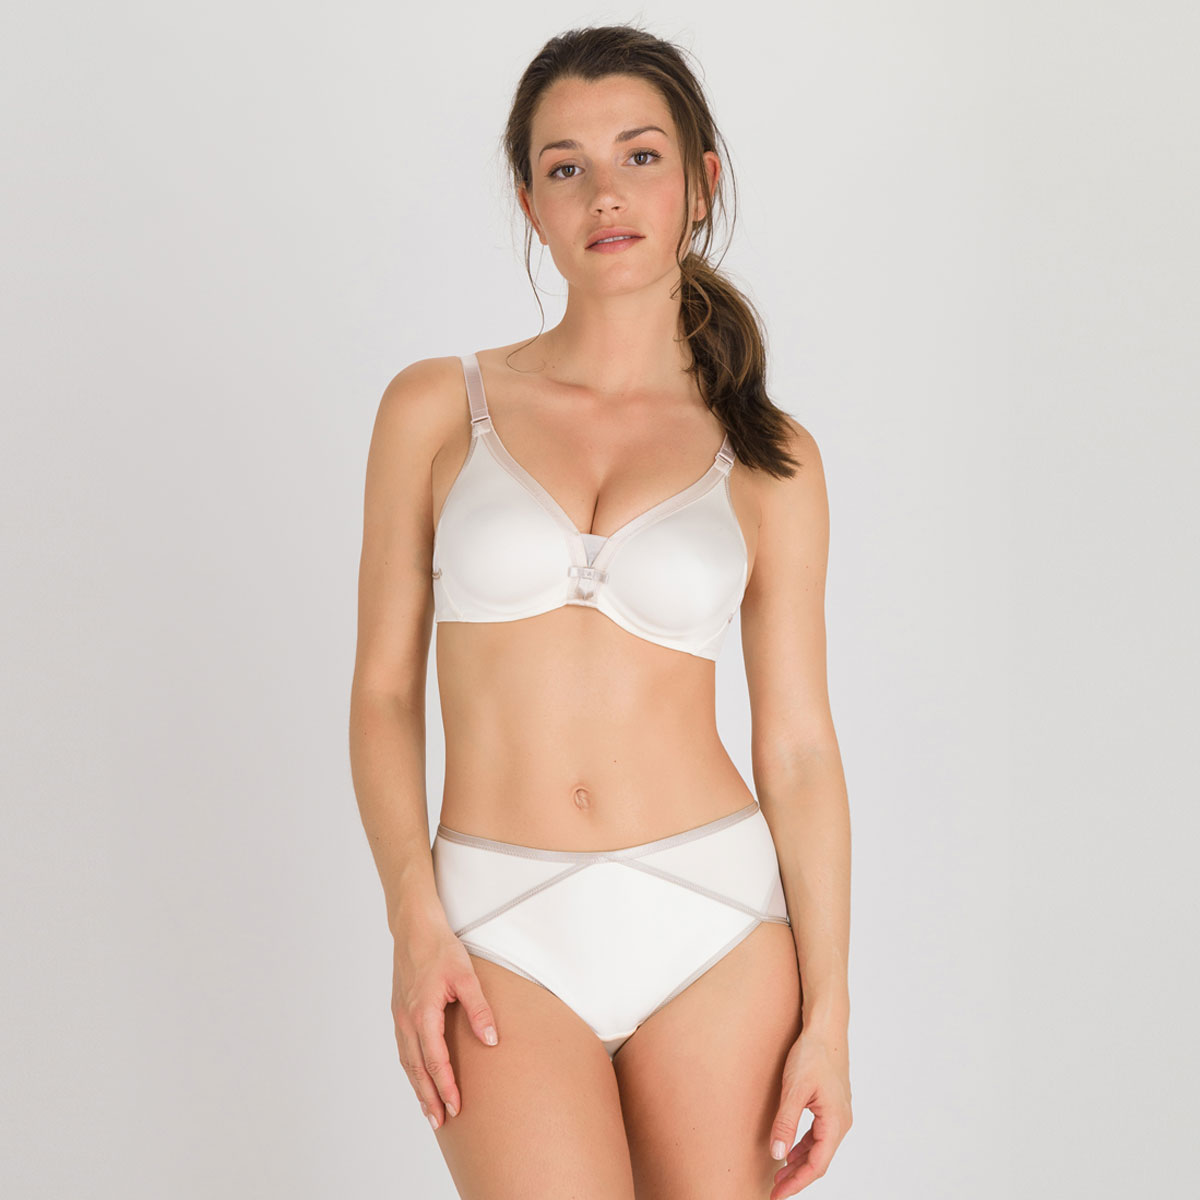 Soutien-gorge emboîtant nacre - Ideal Beauty-PLAYTEX